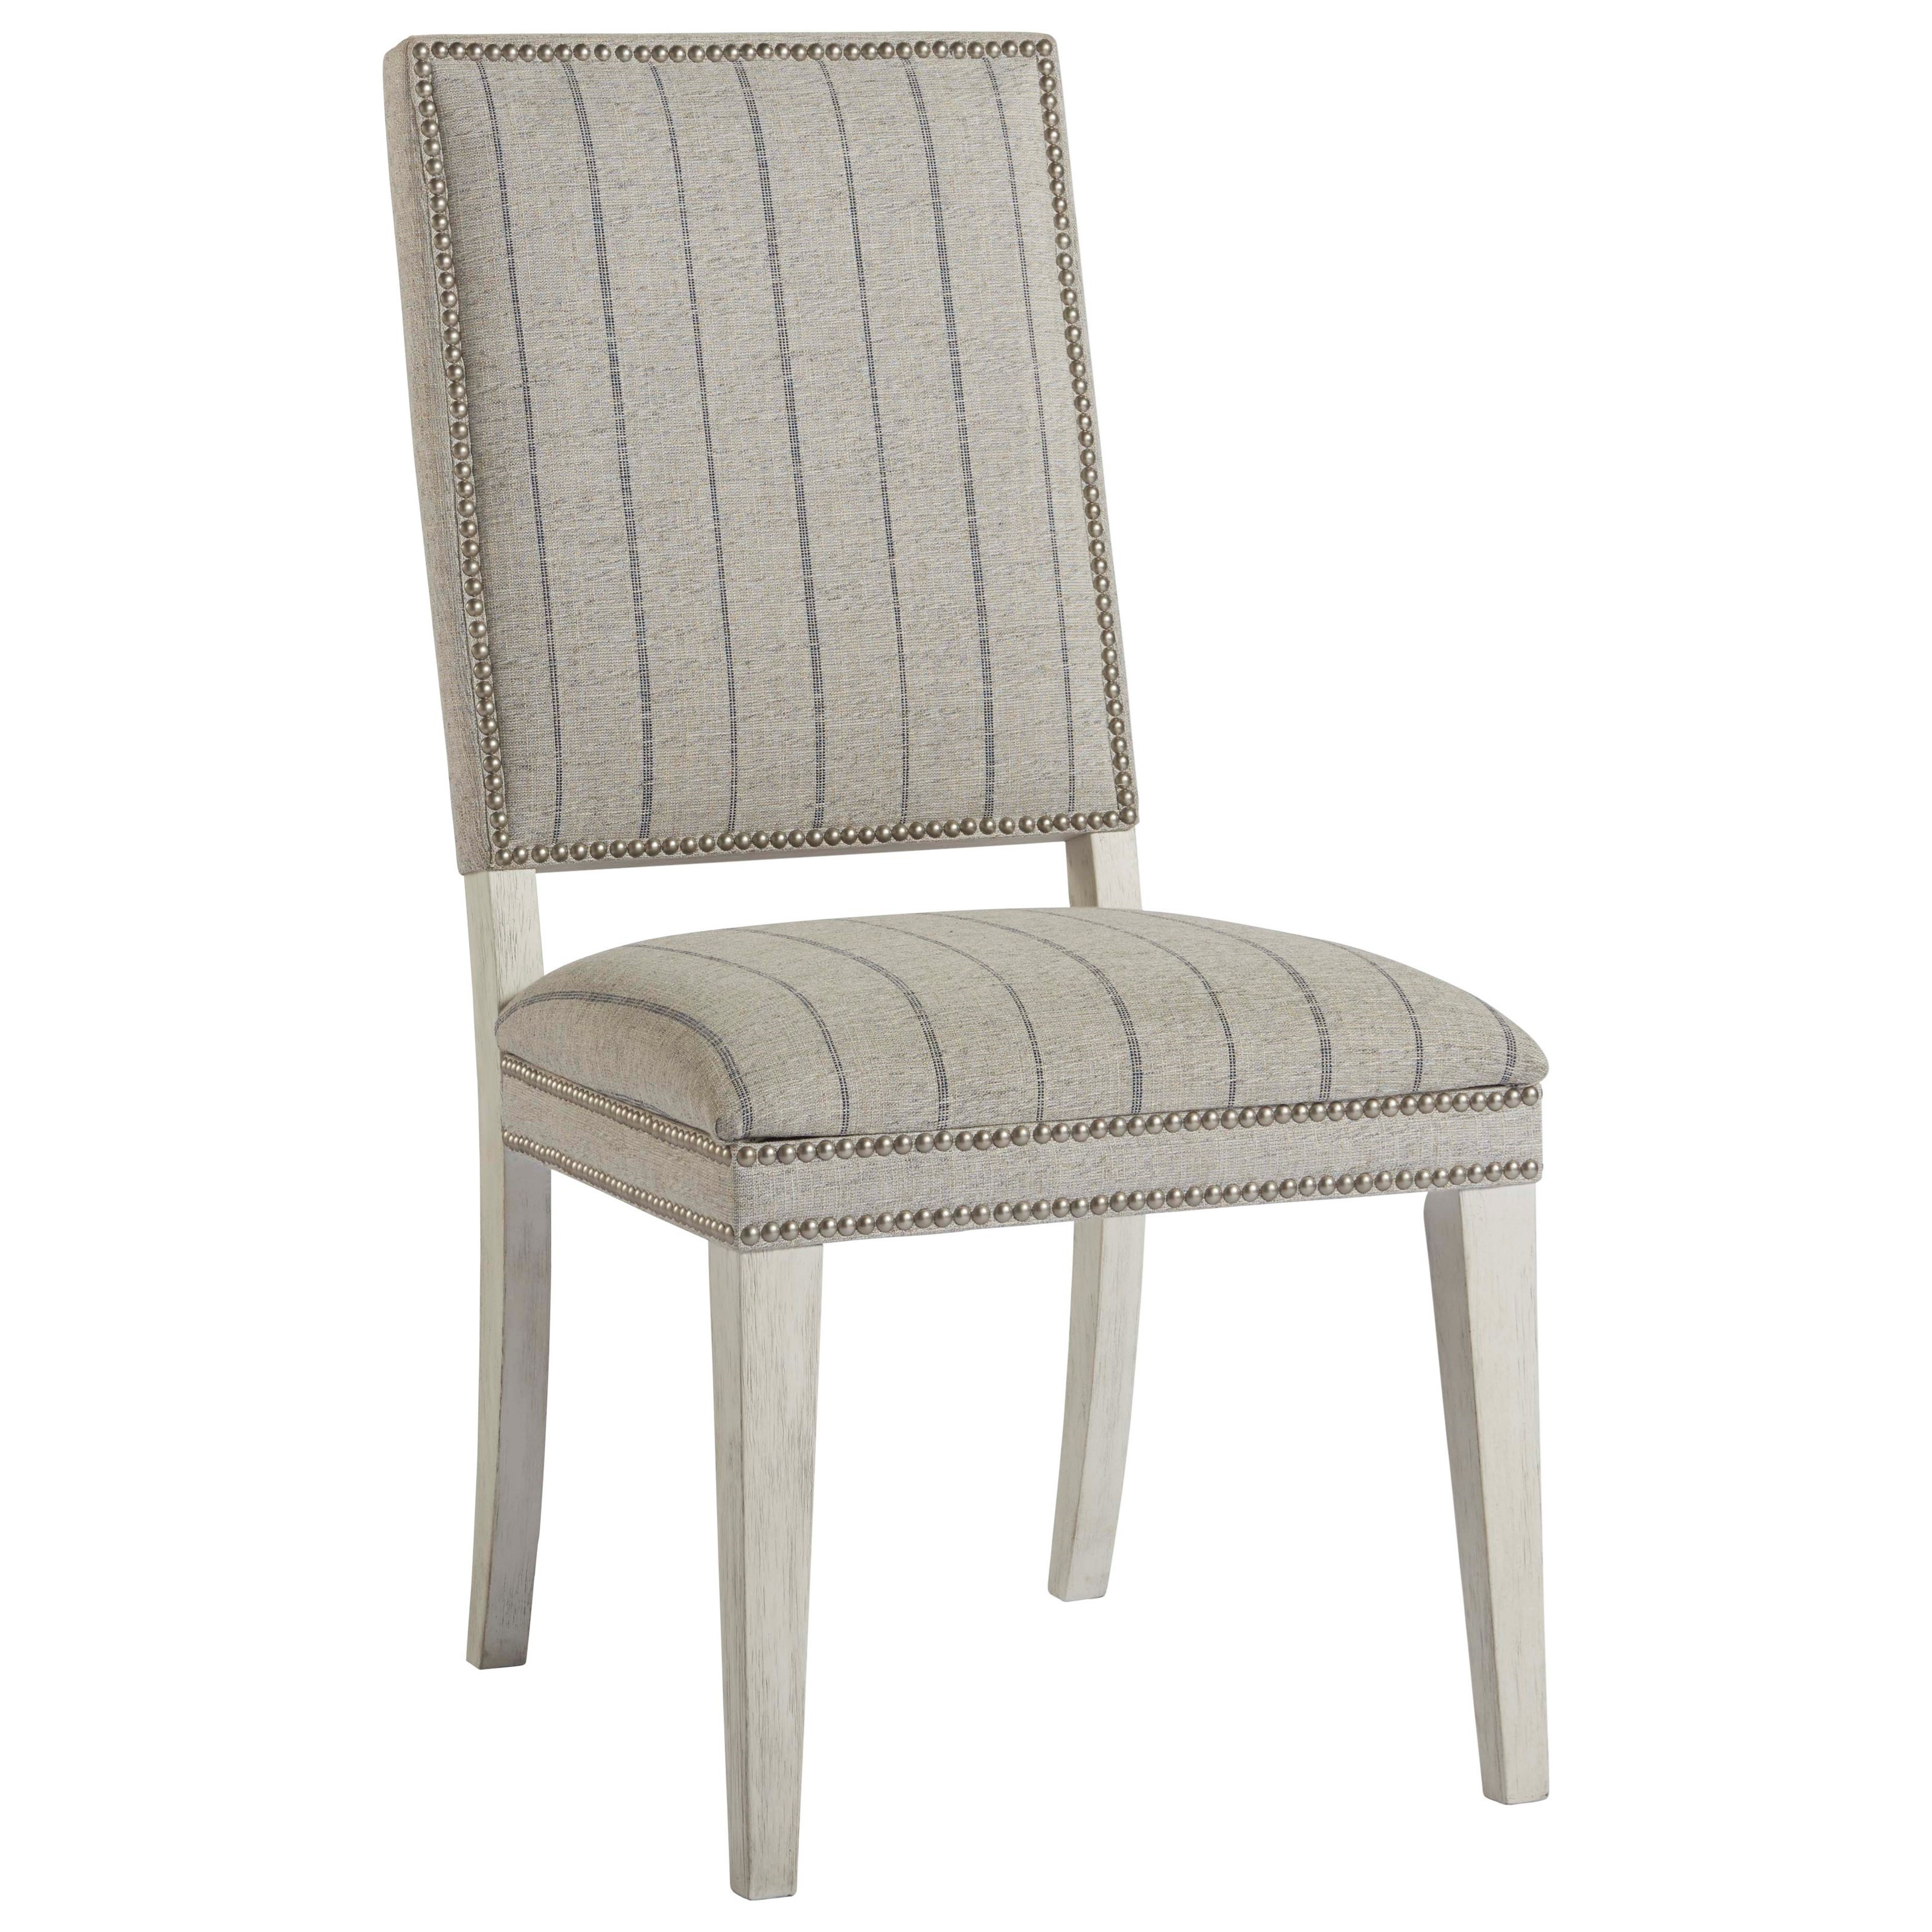 Coastal Living Home - Escape Hamptons Dining Chair by Universal at Baer's Furniture